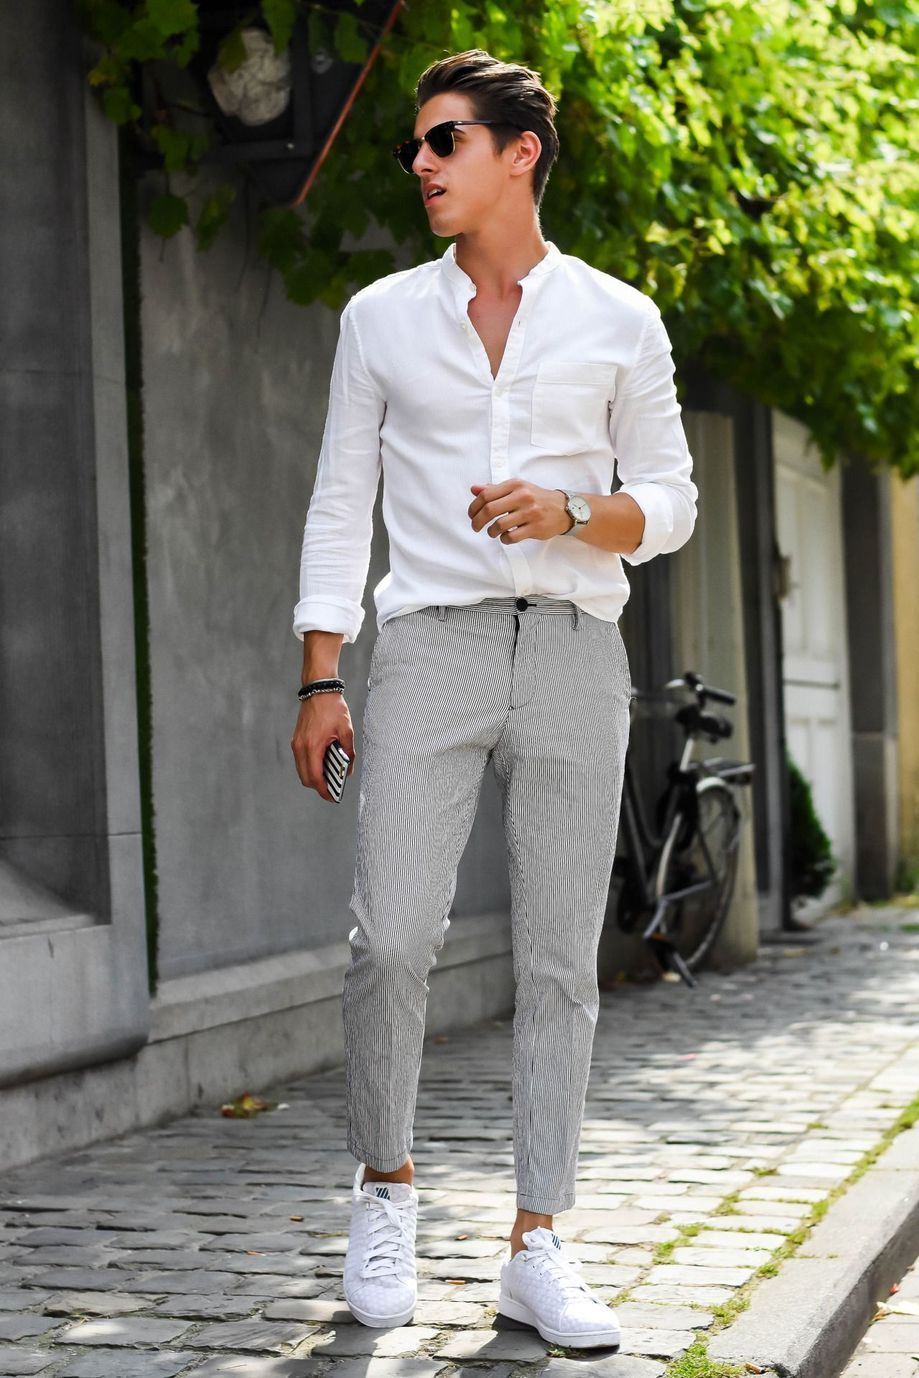 Cool Casual Men's Fashions Summer Outfits Ideas 12